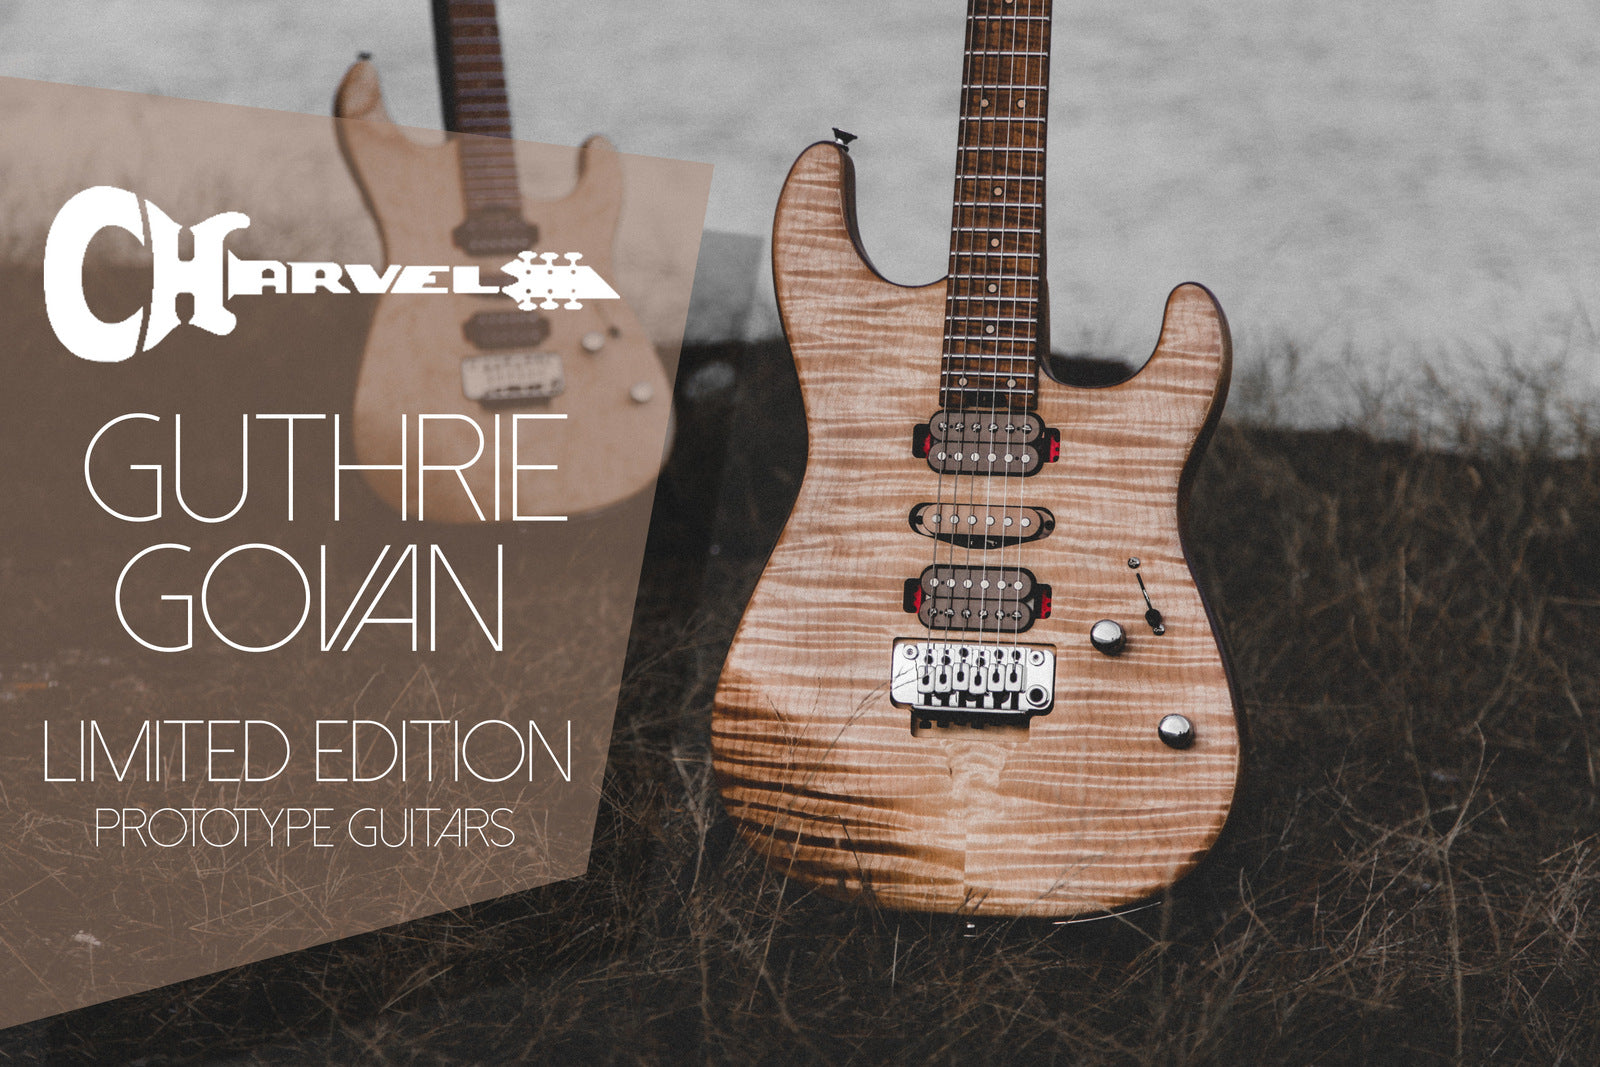 Charvel Guthrie Govan Limited Edition Prototype Signature